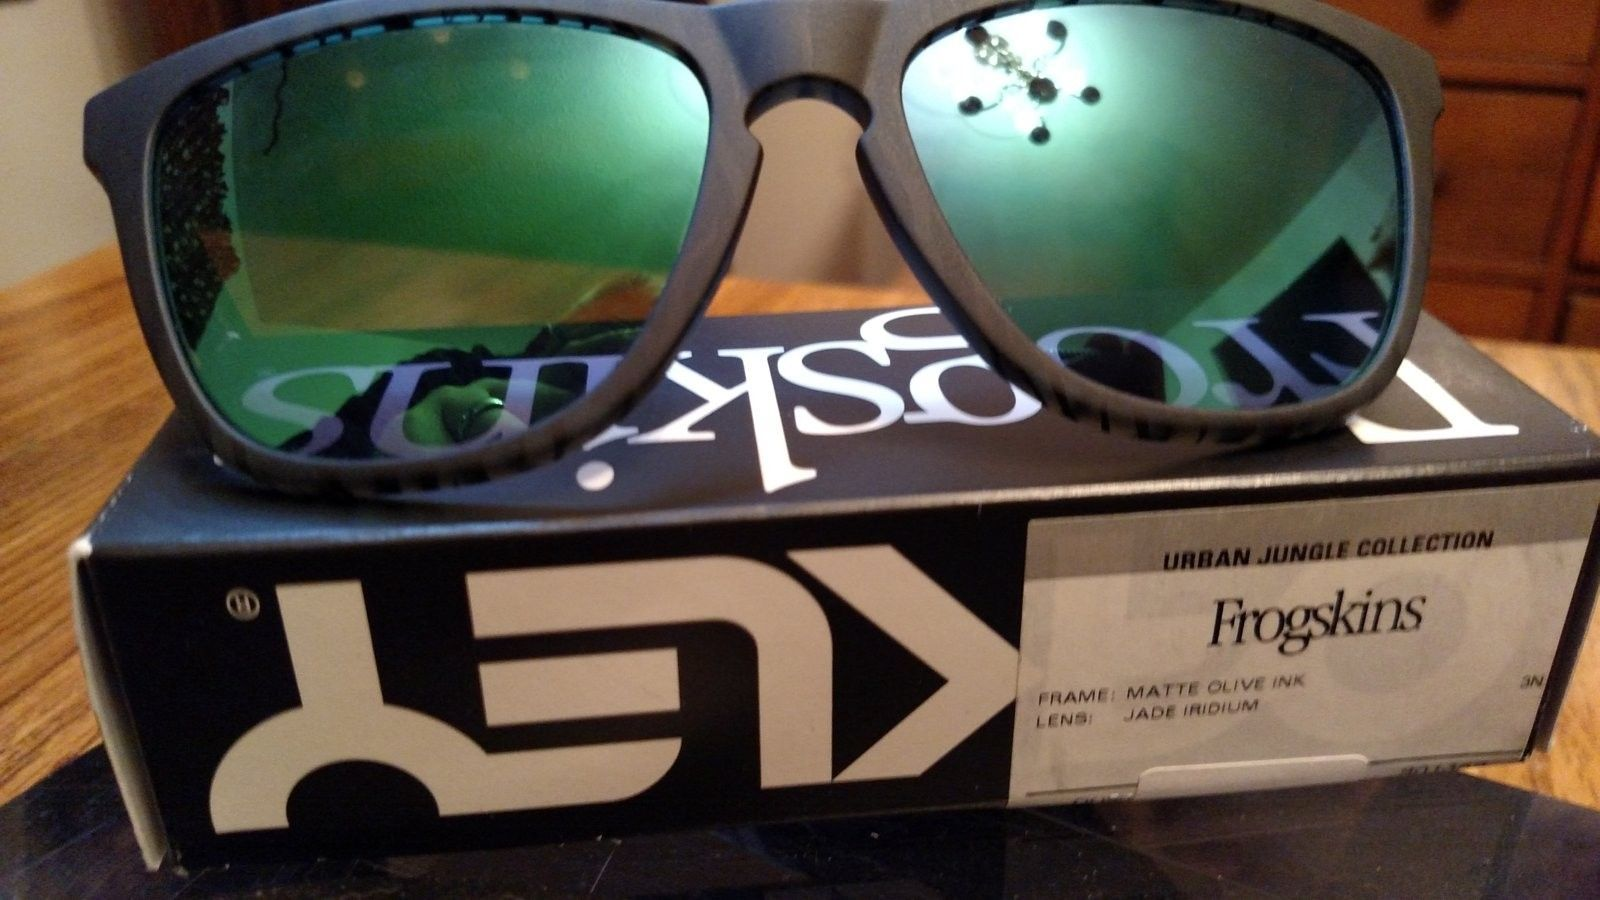 Urban Jungle Collection Frogskins-Matte Olive Ink/Jade Iridium, BNIB - IMG_20160517_202103328.jpg